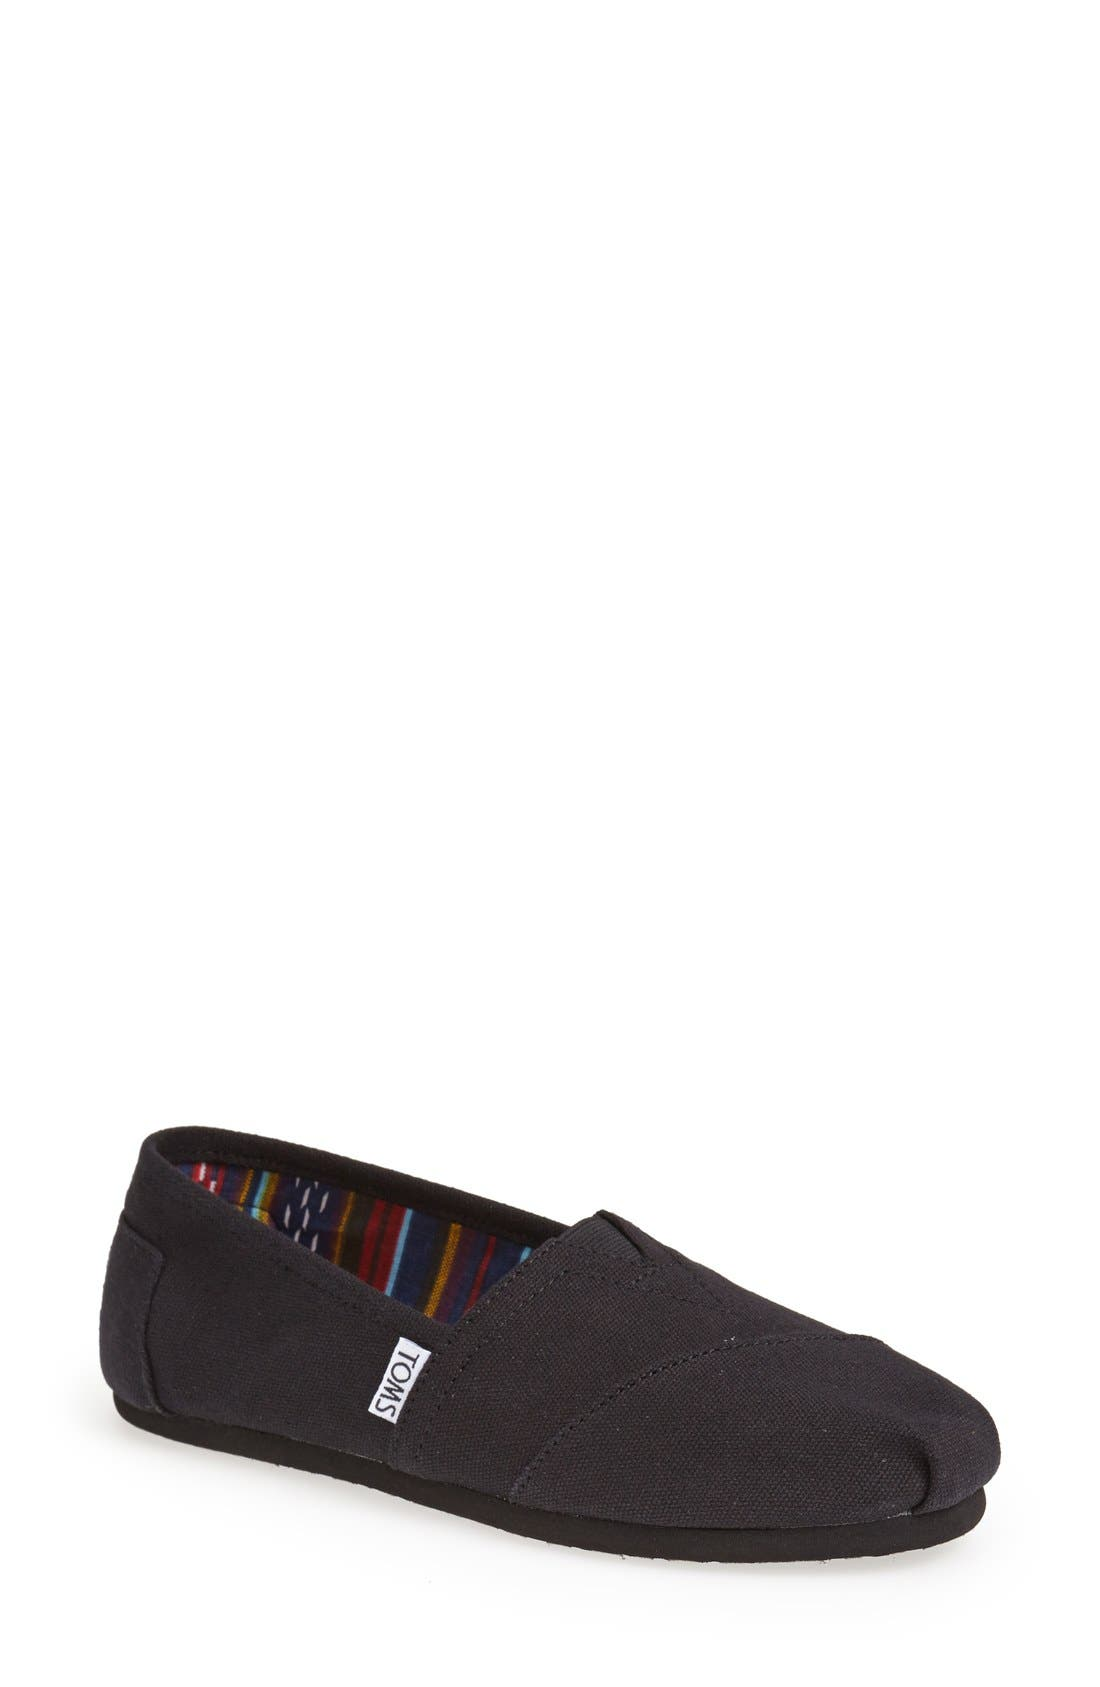 Alternate Image 1 Selected - TOMS Classic - Alpargata Slip-On (Women)